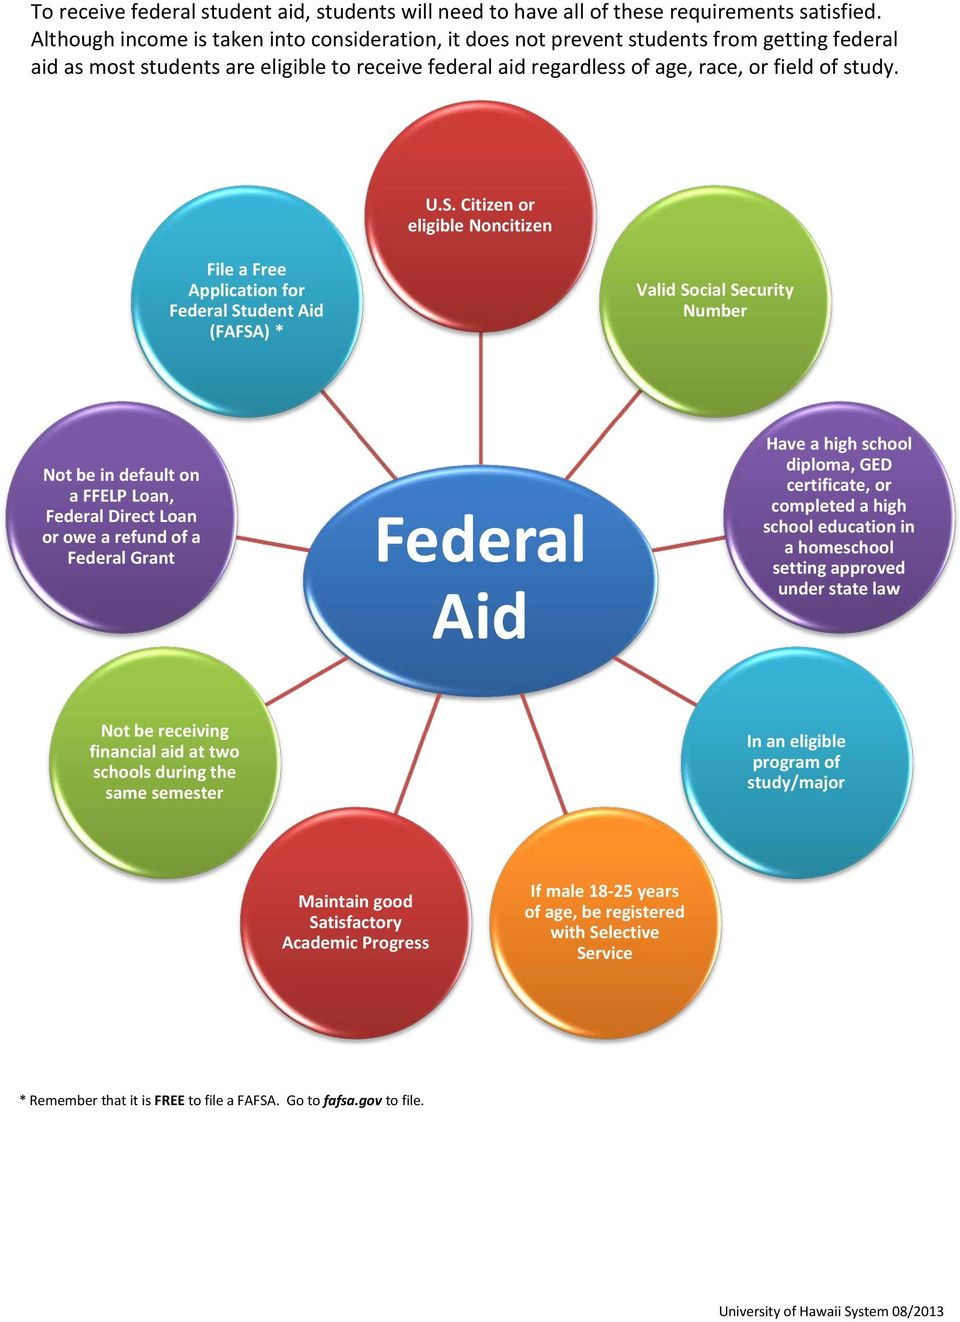 Citizen or eligible Noncitizen File a Free Application for Federal Student Aid (FAFSA) * Valid Social Security Number Not be in default on a FFELP Loan, Federal Direct Loan or owe a refund of a